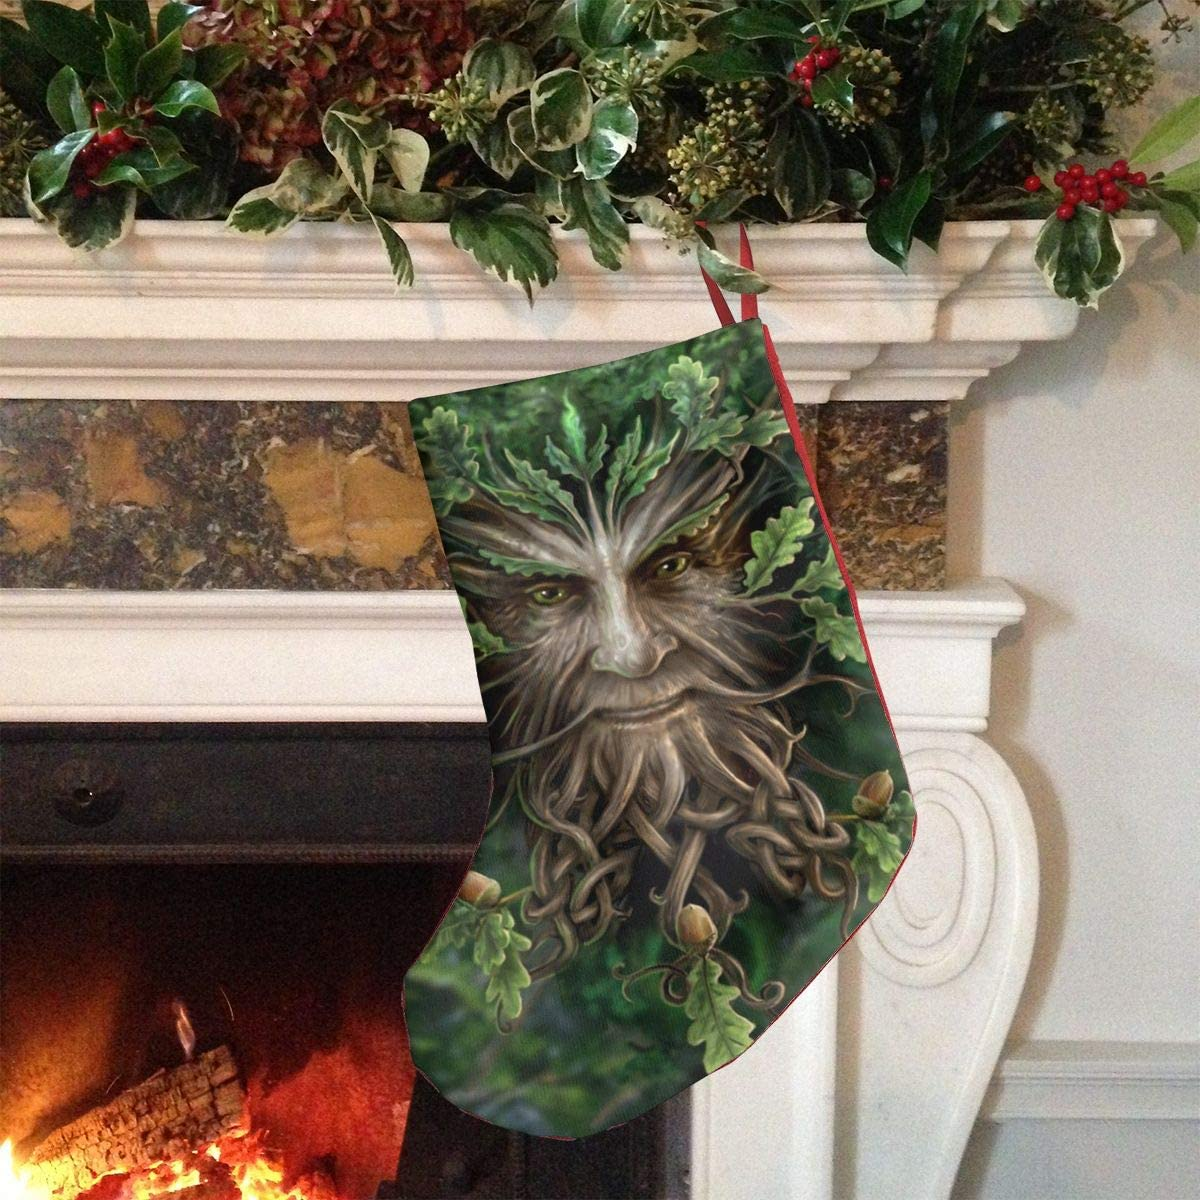 Tree Christmas Yule Norse Wiccan Pagan Inches Stock 18 Very Max 66% OFF popular